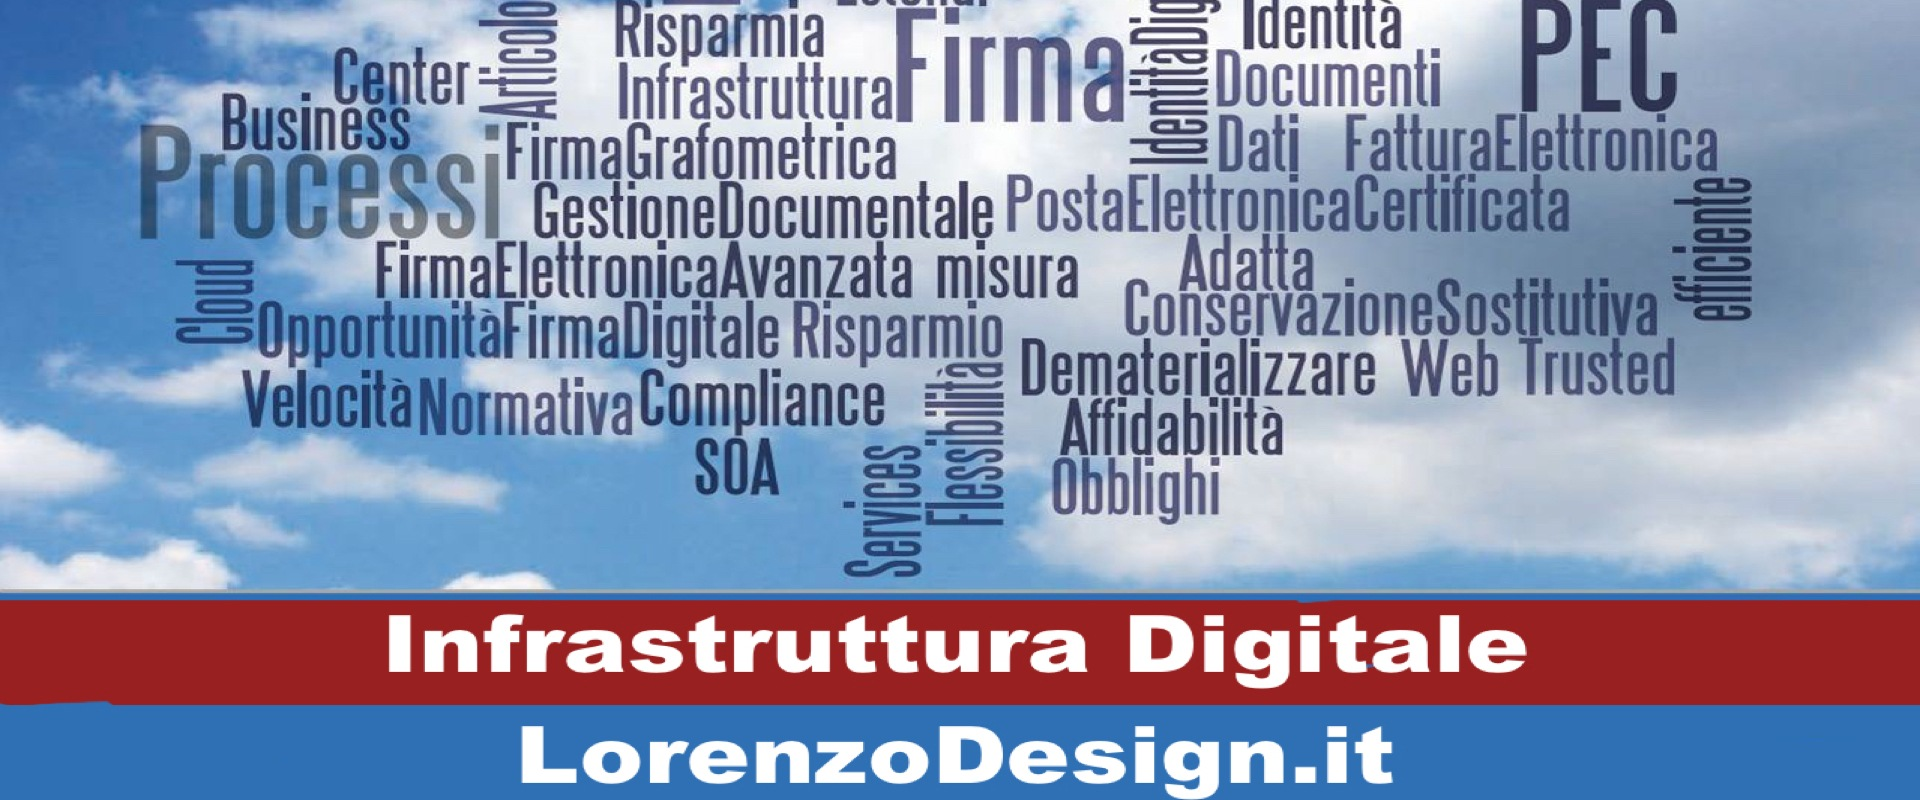 infrastruttura digitale-lorenzo-design-it